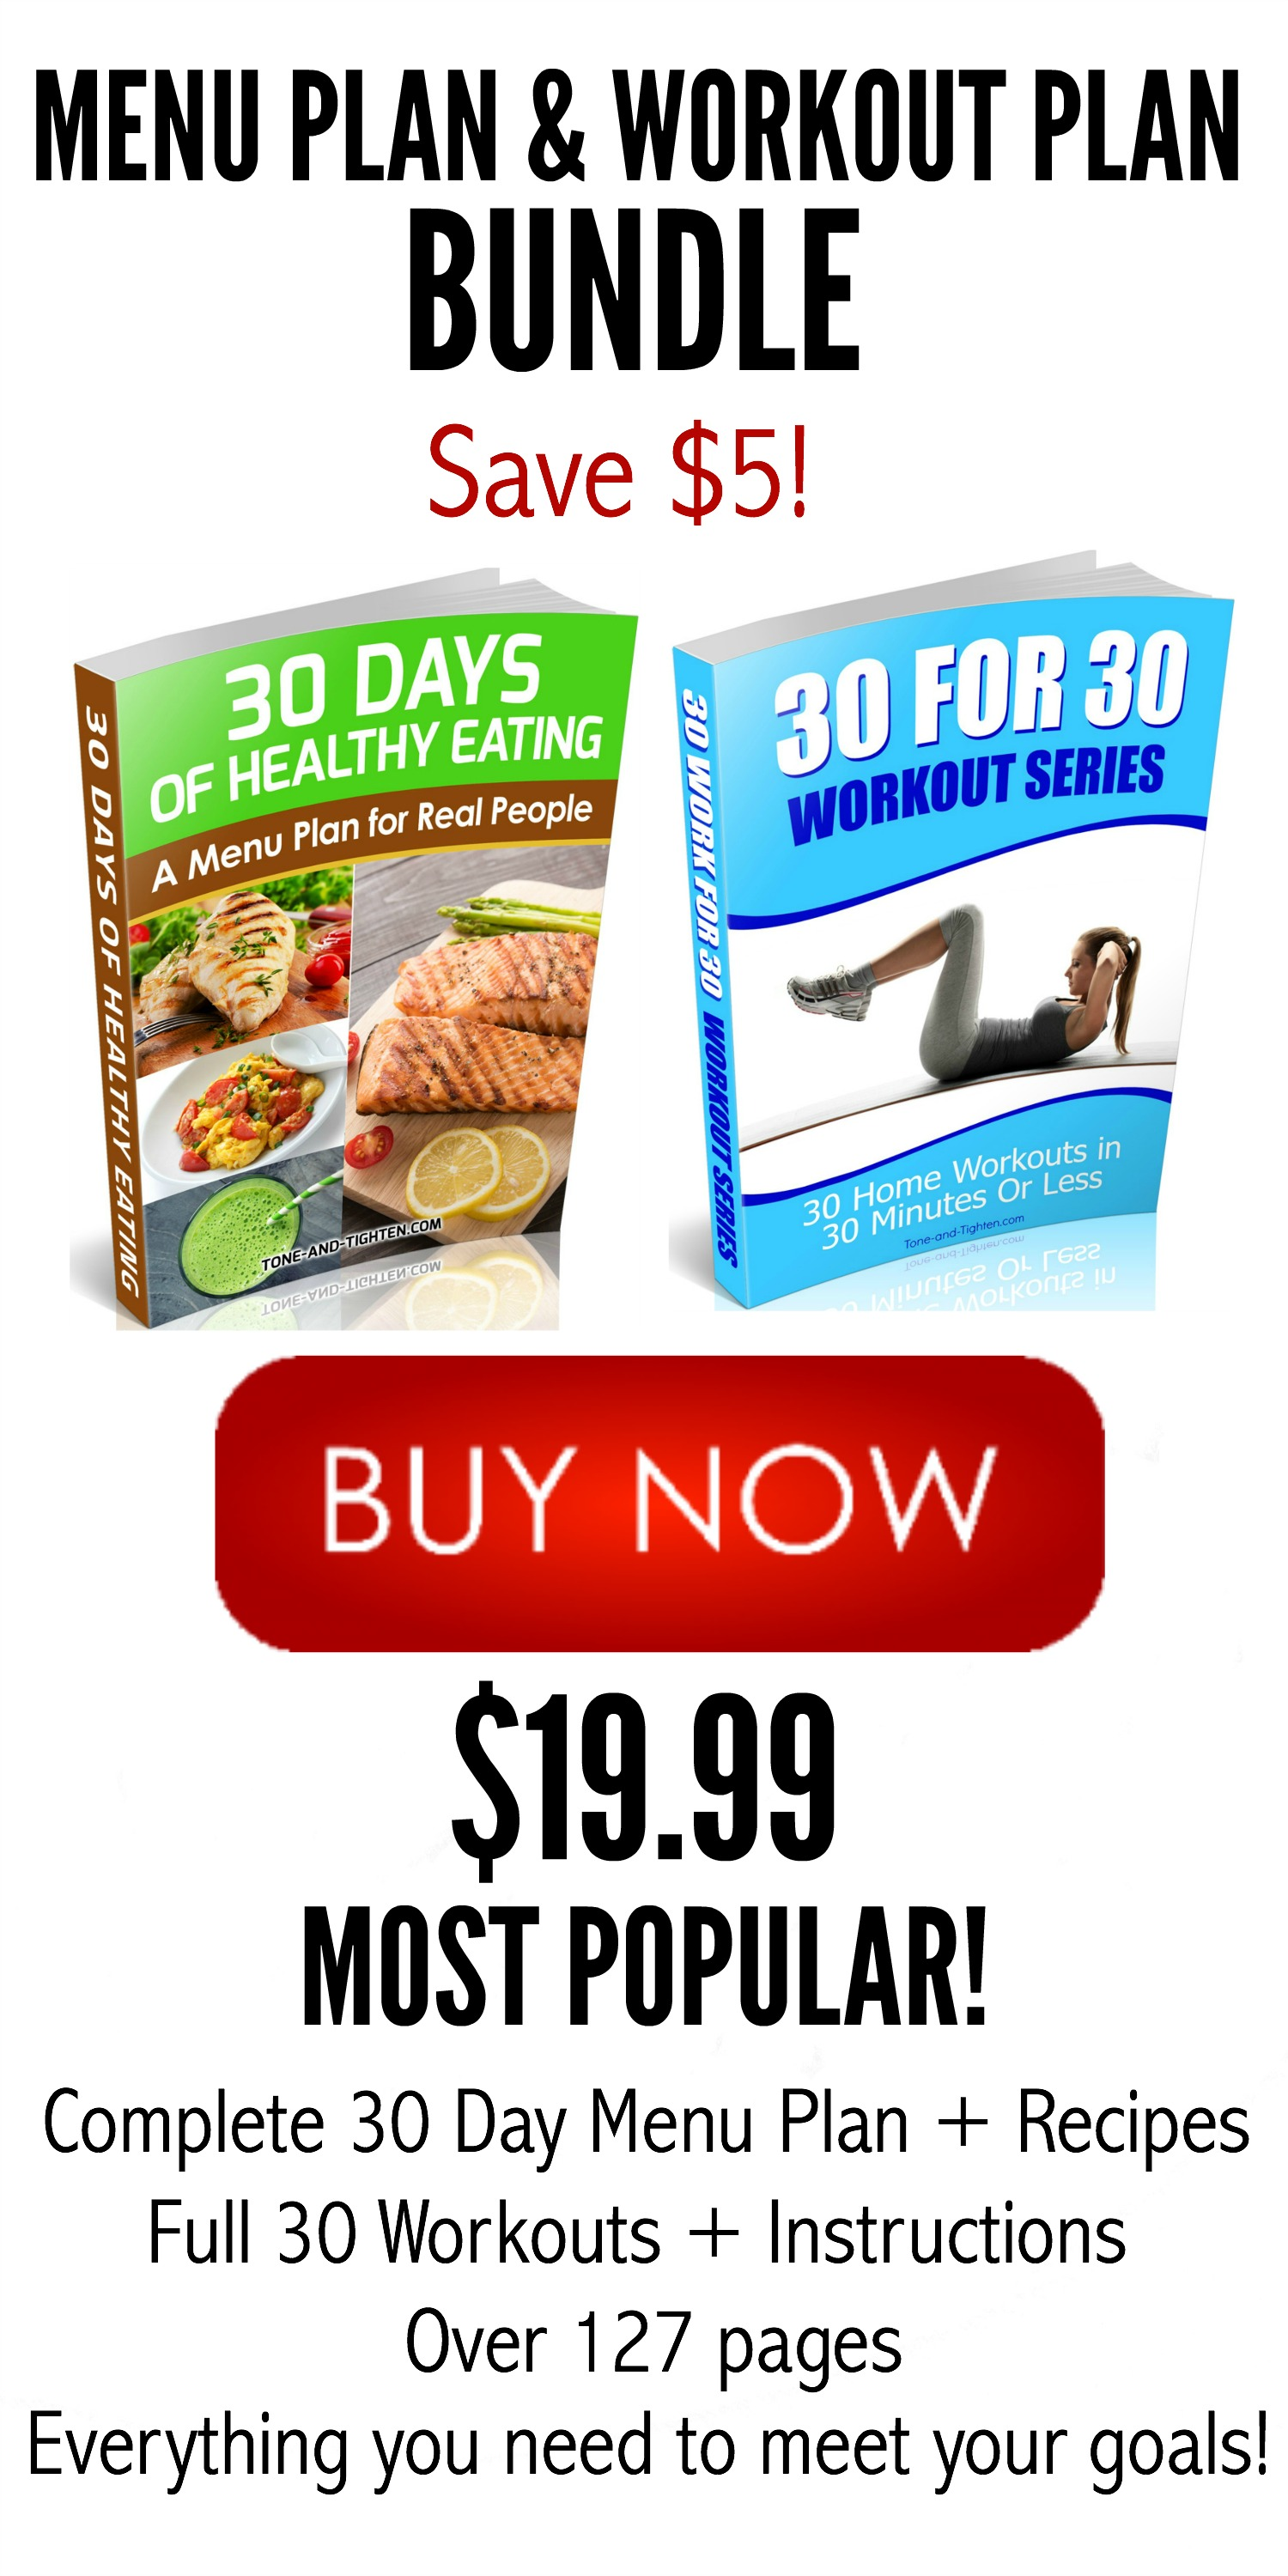 Menu Plan and Workout Plan Bundle